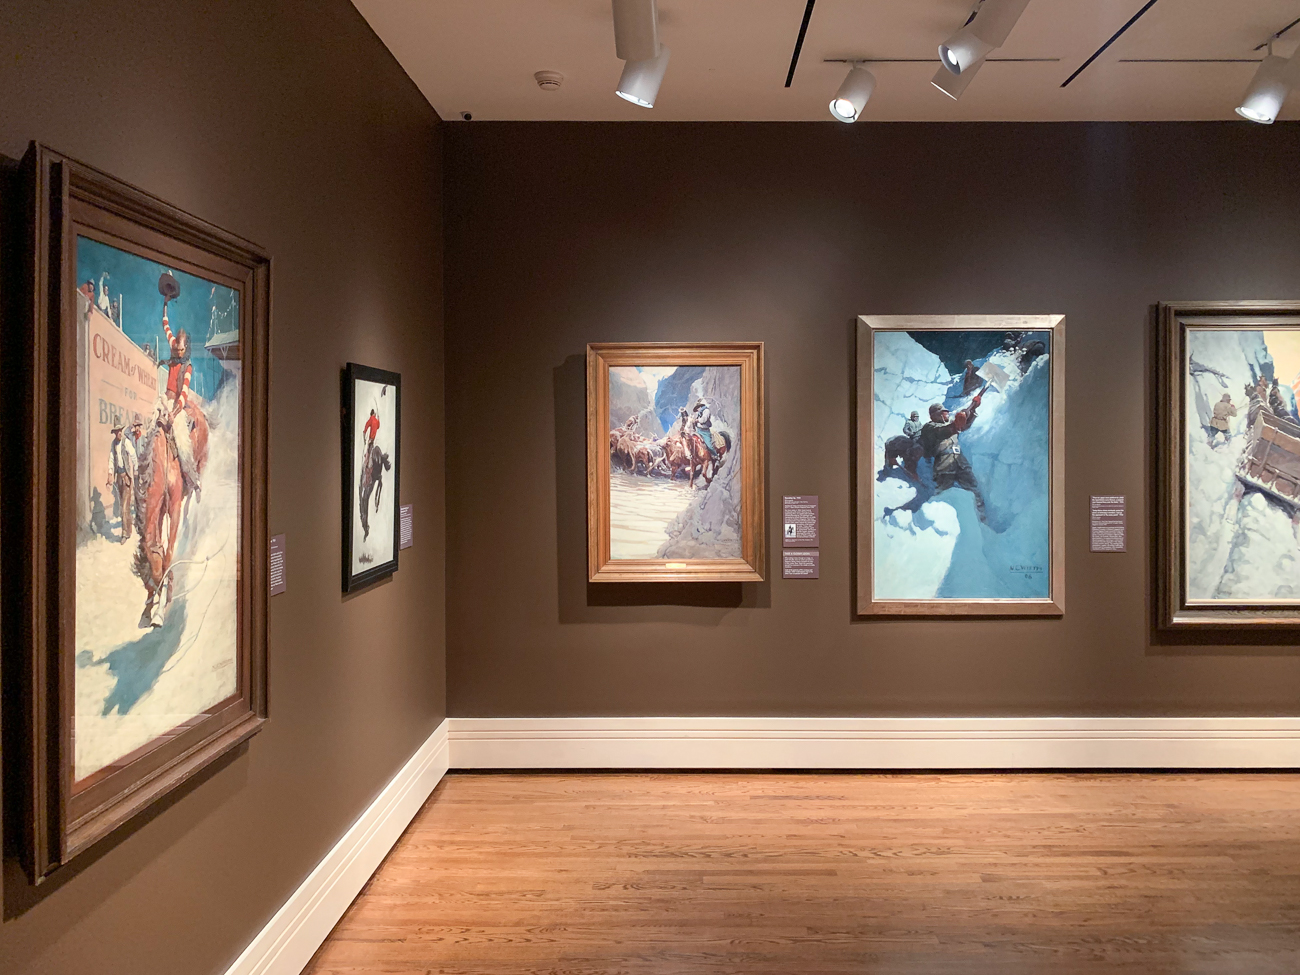 New Perspectives was co-organized by the Brandywine River Museum of Art in Chadds Ford, Pennsylvania, and the Portland Museum of Art in Maine. It is showing at the Taft Museum of Art from February 8 to May 3, 2020. / Image: Phil Armstrong, Cincinnati Refined // Published: 2.9.20